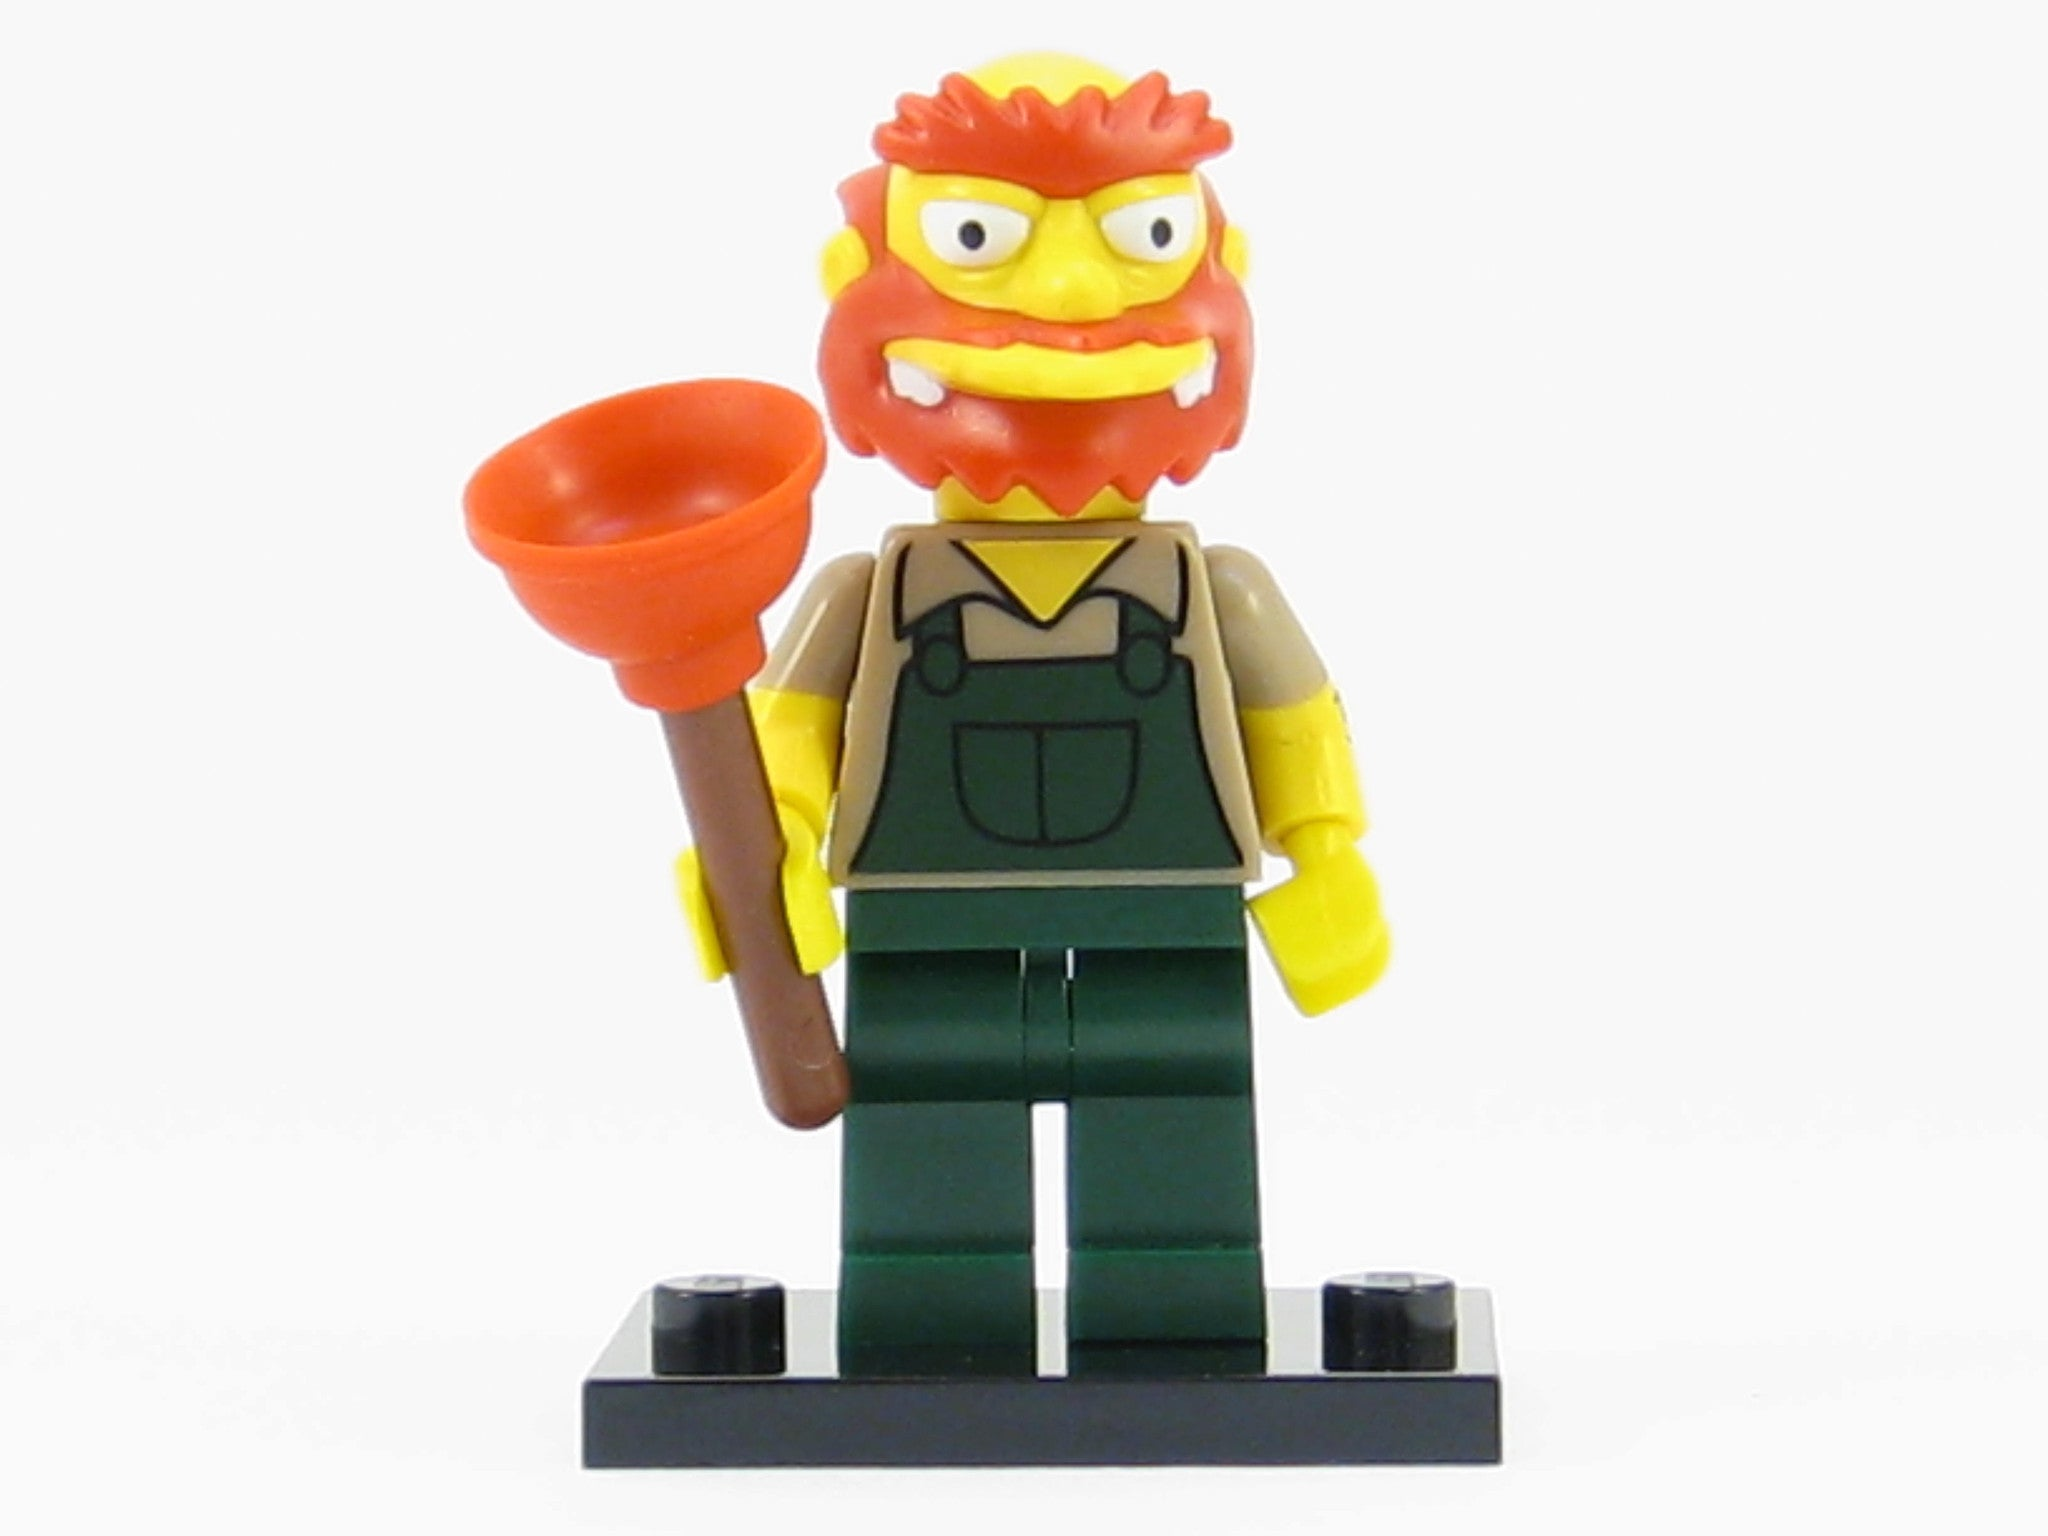 LEGO The Simpsons Series 2 Groundskeeper Willie Minifigure with Accessories